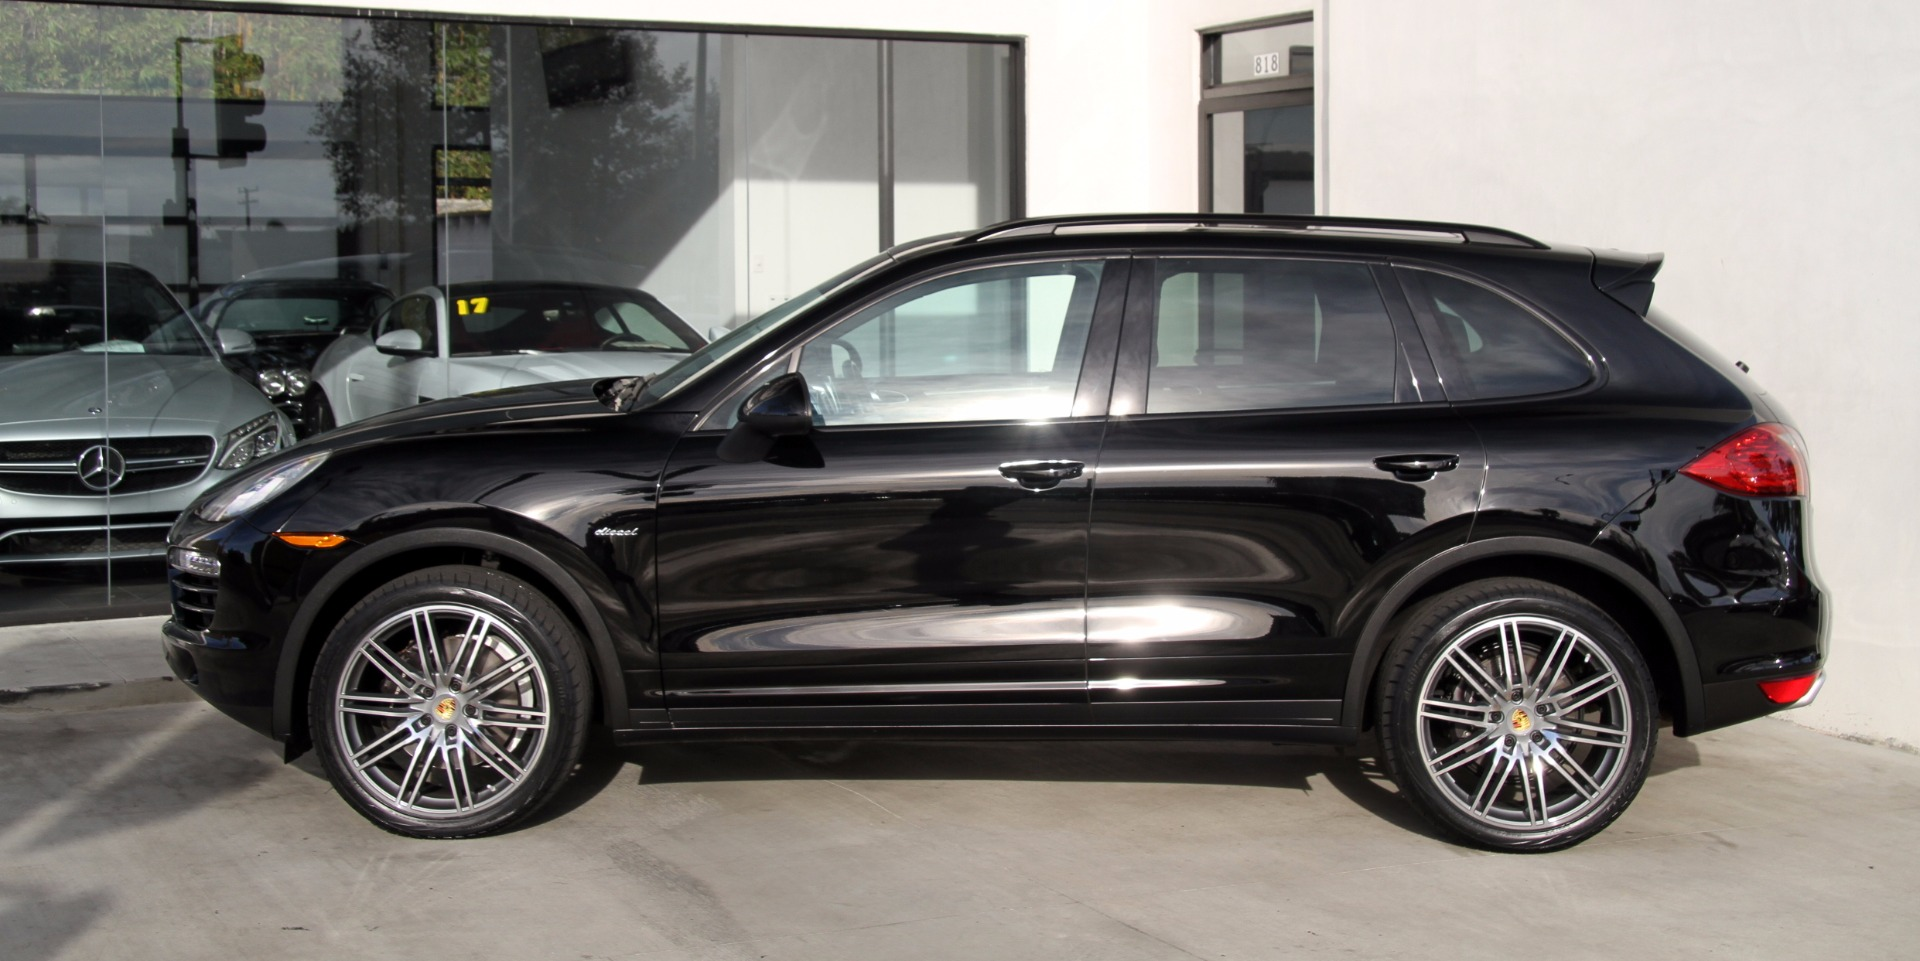 2014 porsche cayenne diesel stock 6033 for sale near redondo beach ca ca porsche dealer. Black Bedroom Furniture Sets. Home Design Ideas